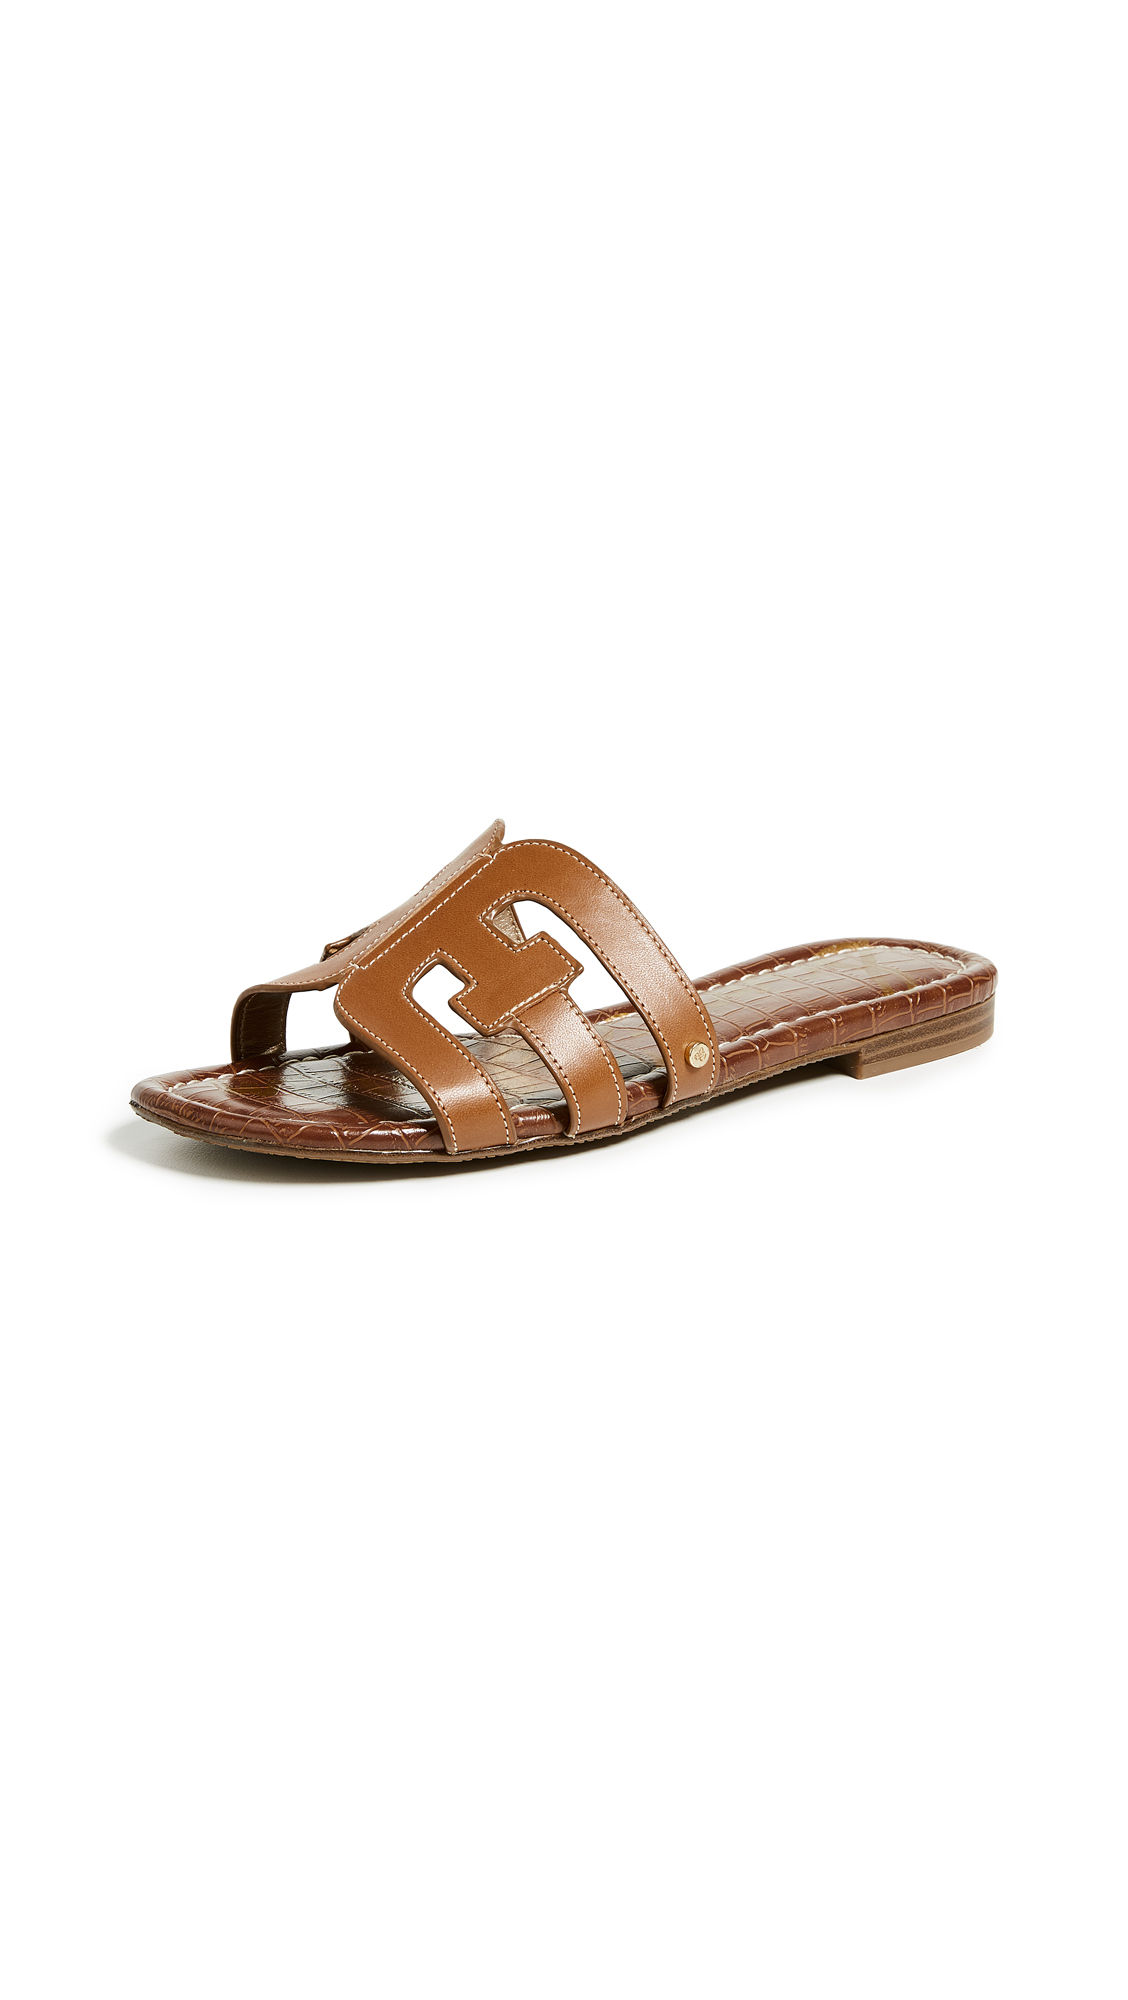 Sam Edelman Bay Slides - Saddle